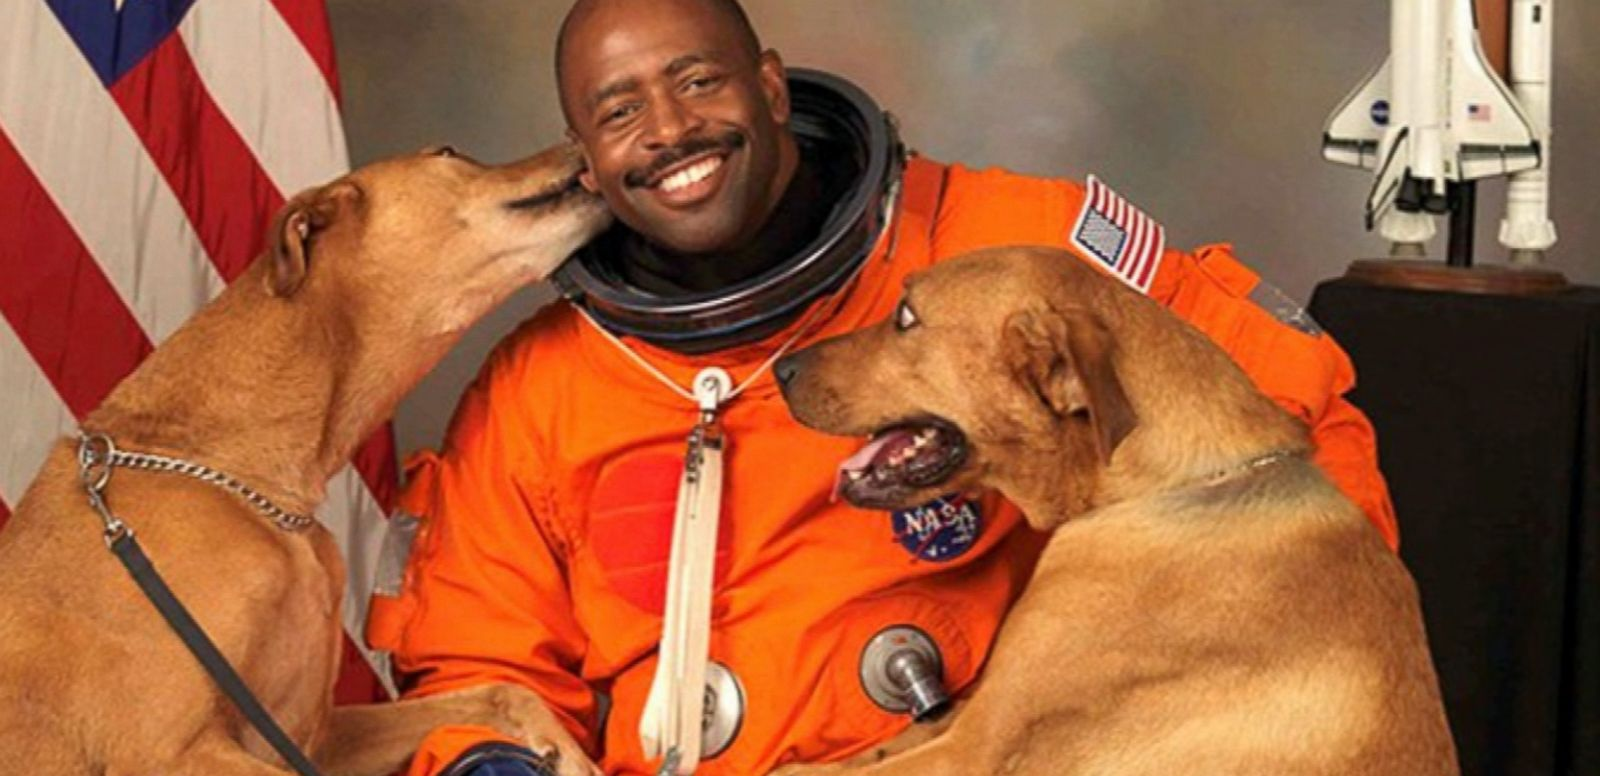 VIDEO: Leland Melvin's official NASA photo features his two dogs.